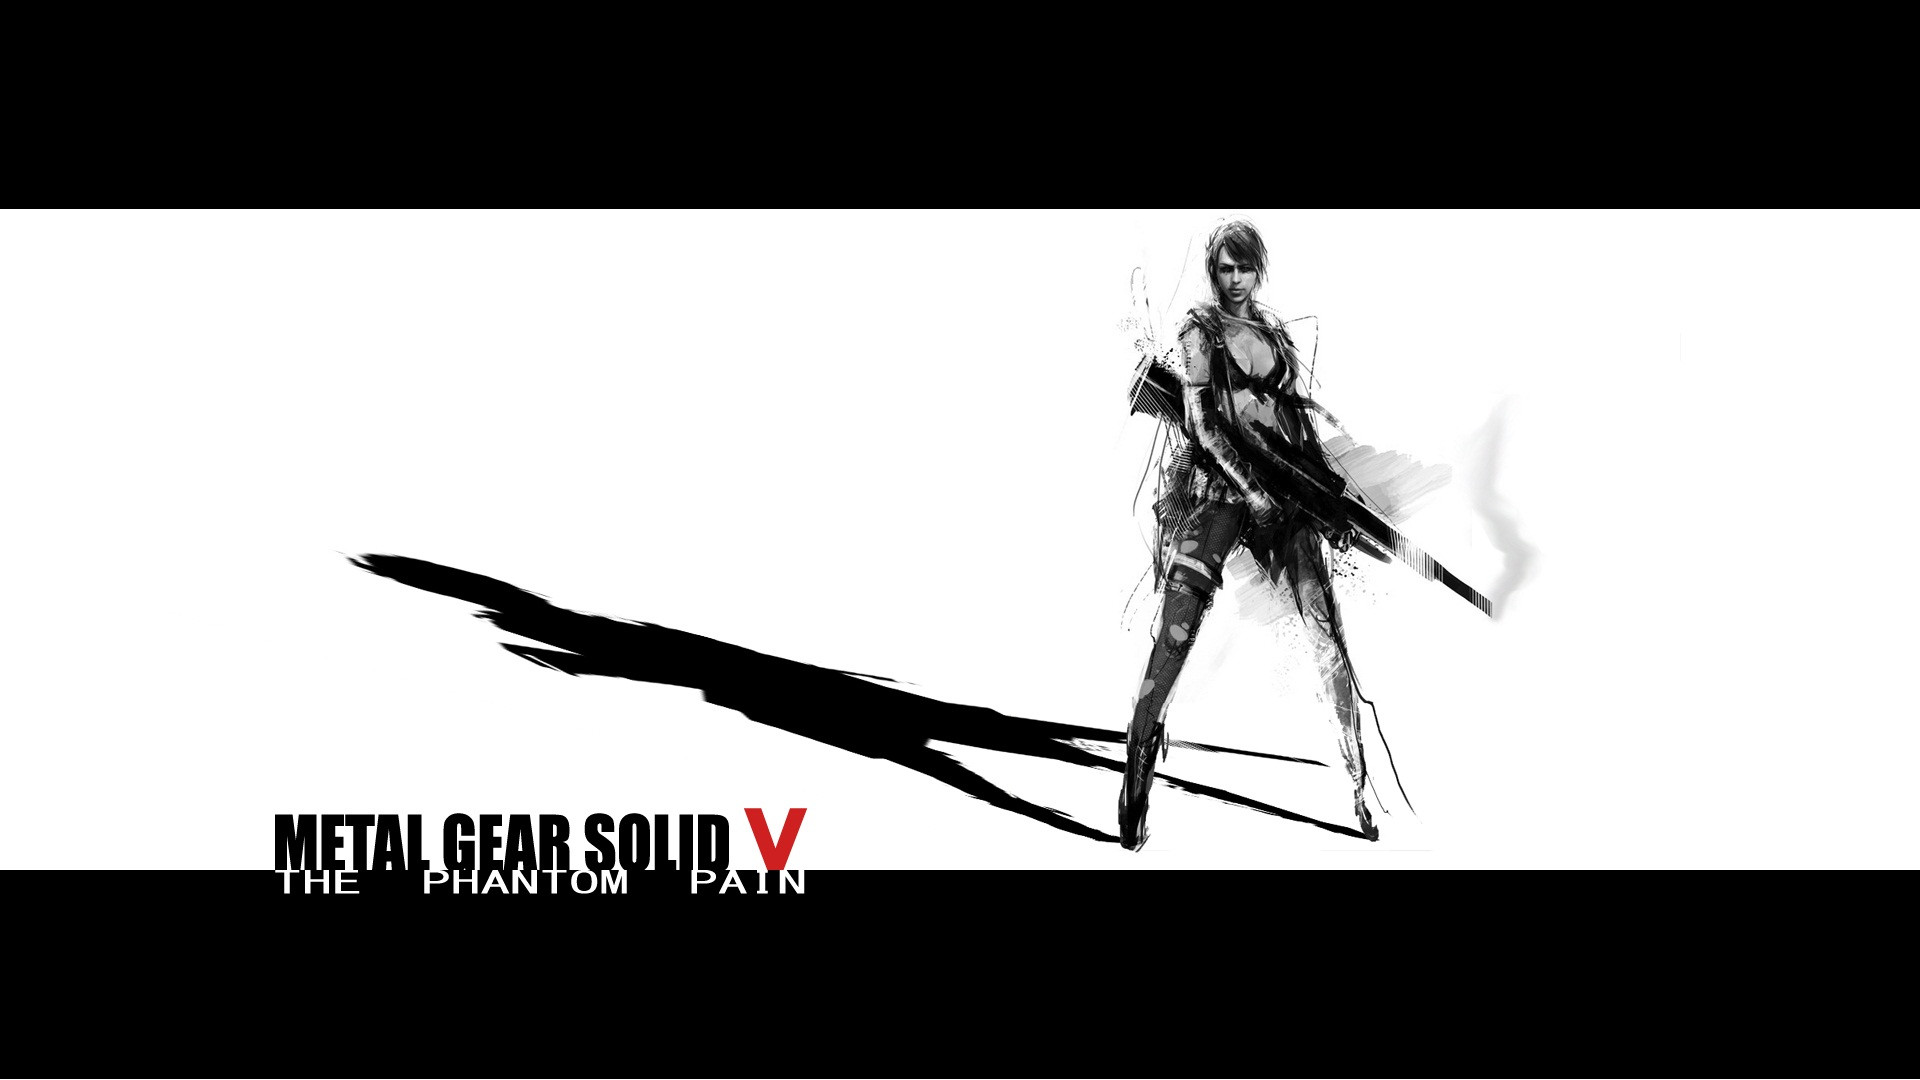 General Metal Gear Solid V: The Phantom Pain video games Kojima  Productions Quiet simple